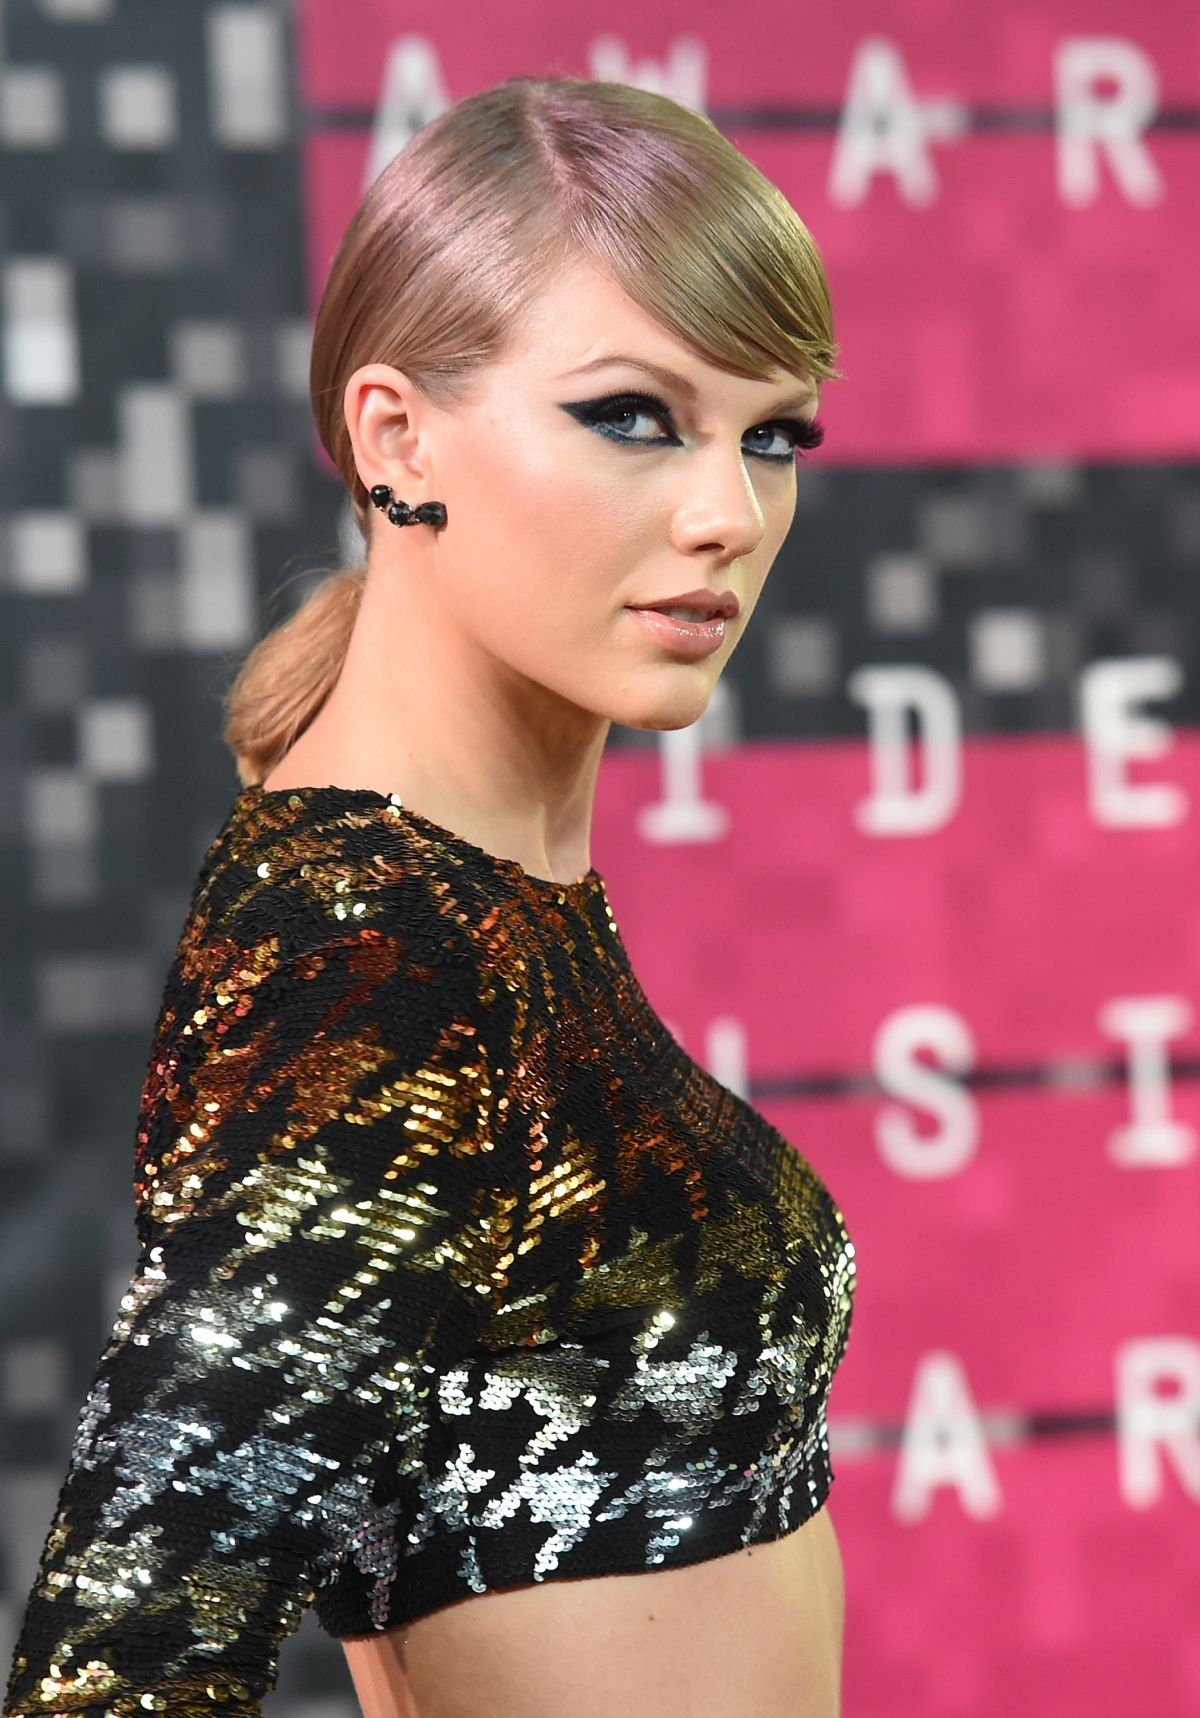 Taylor Swift And Calvin Harris Scottish Dj To Go Down On One Knee This Year Taylor Swift And Calvin Taylor Swift Pictures Homecoming Hairstyles